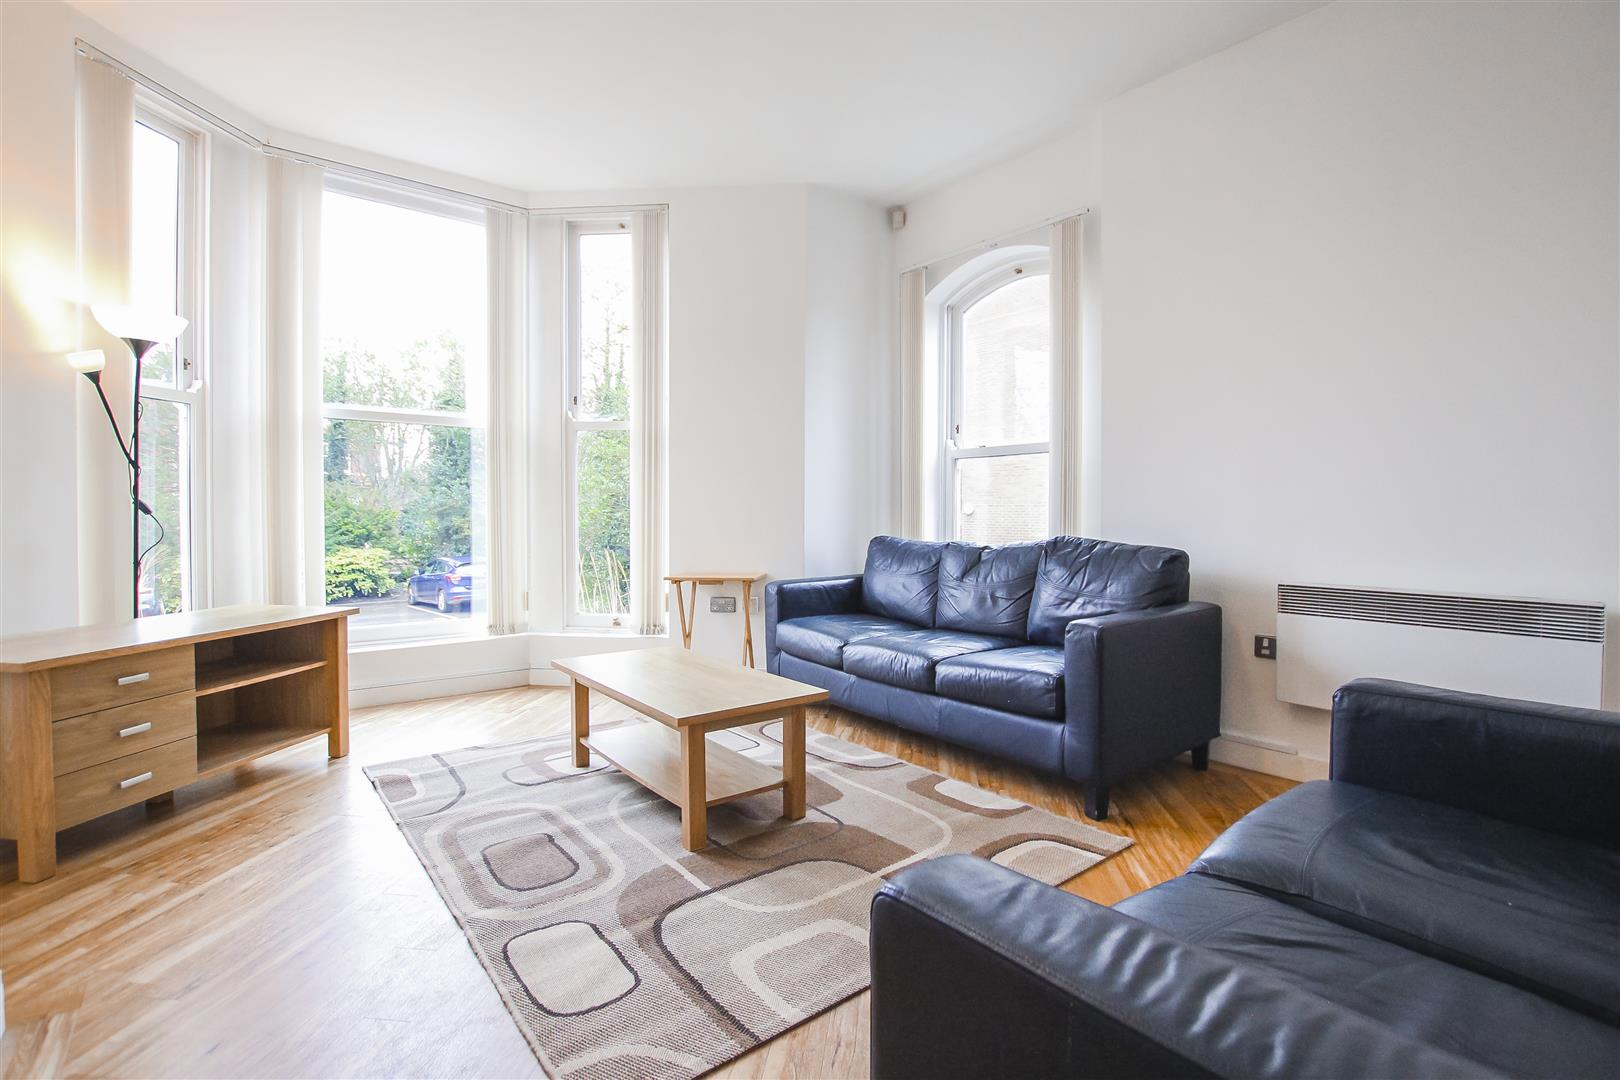 2 Bedroom Apartment For Sale - Living Room